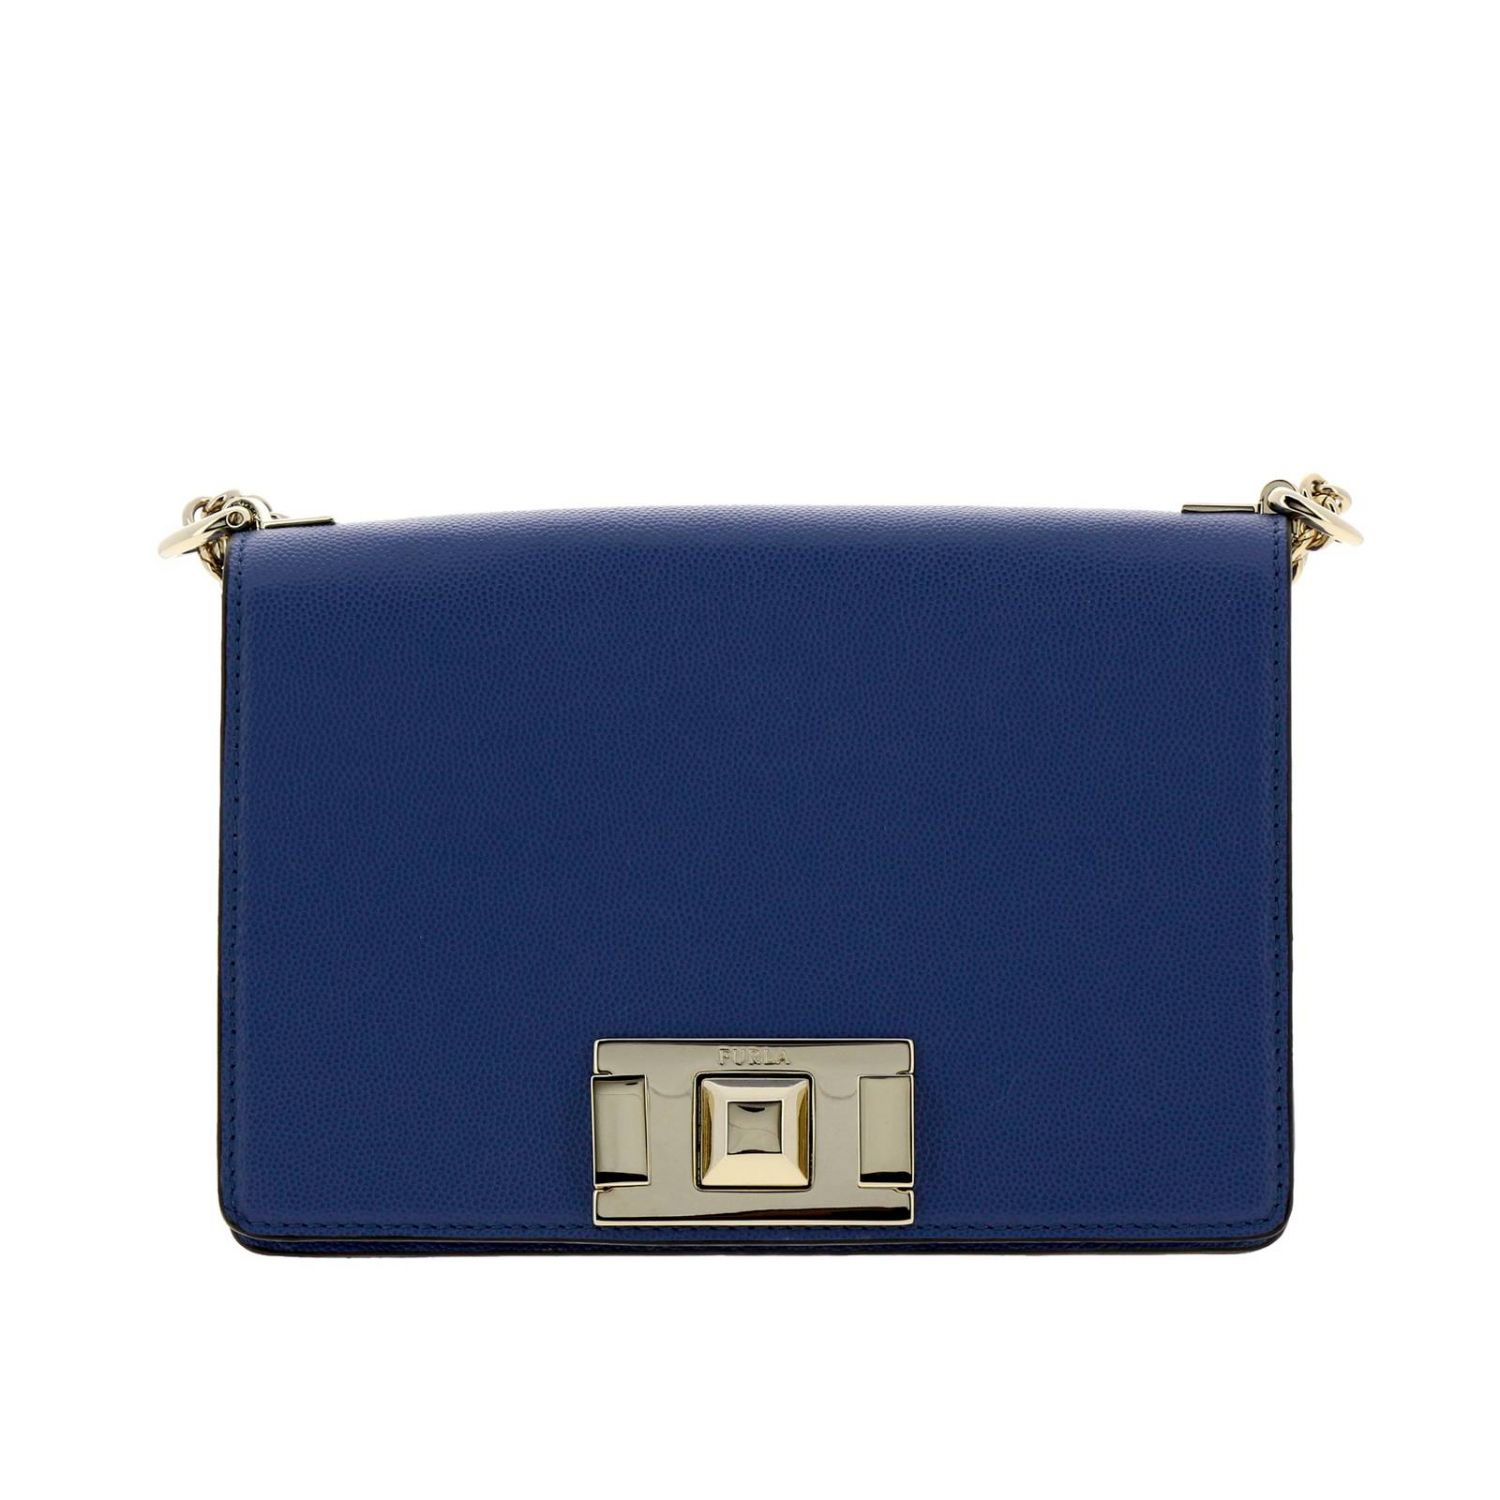 Mini bag Furla: Mimì Furla mini bag in textured leather with shoulder strap periwinkle 1